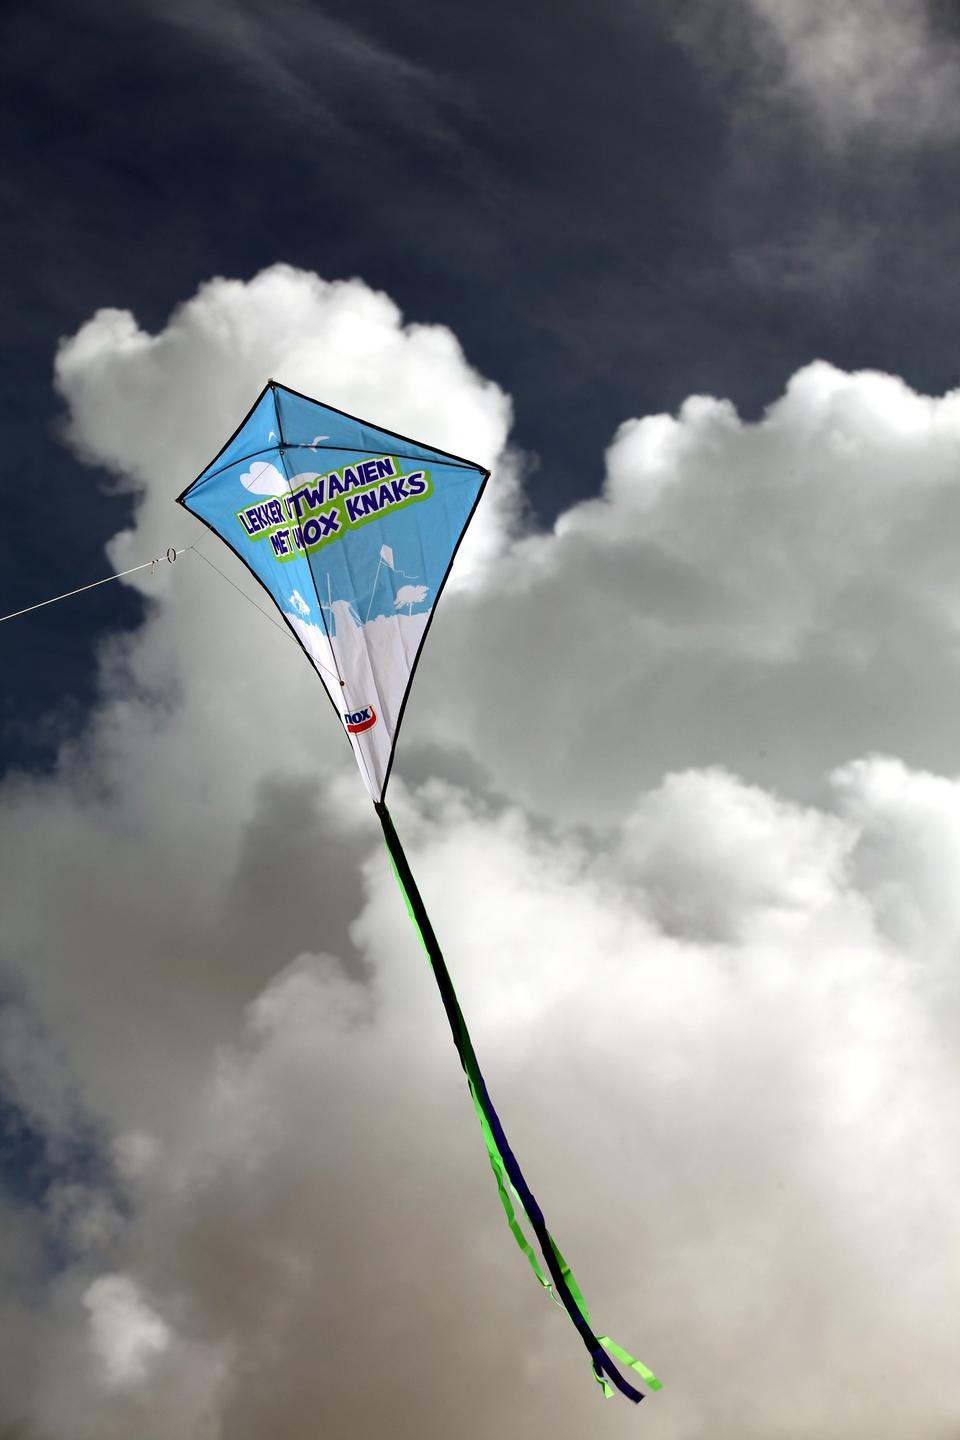 A blue kite flying against a blue sky